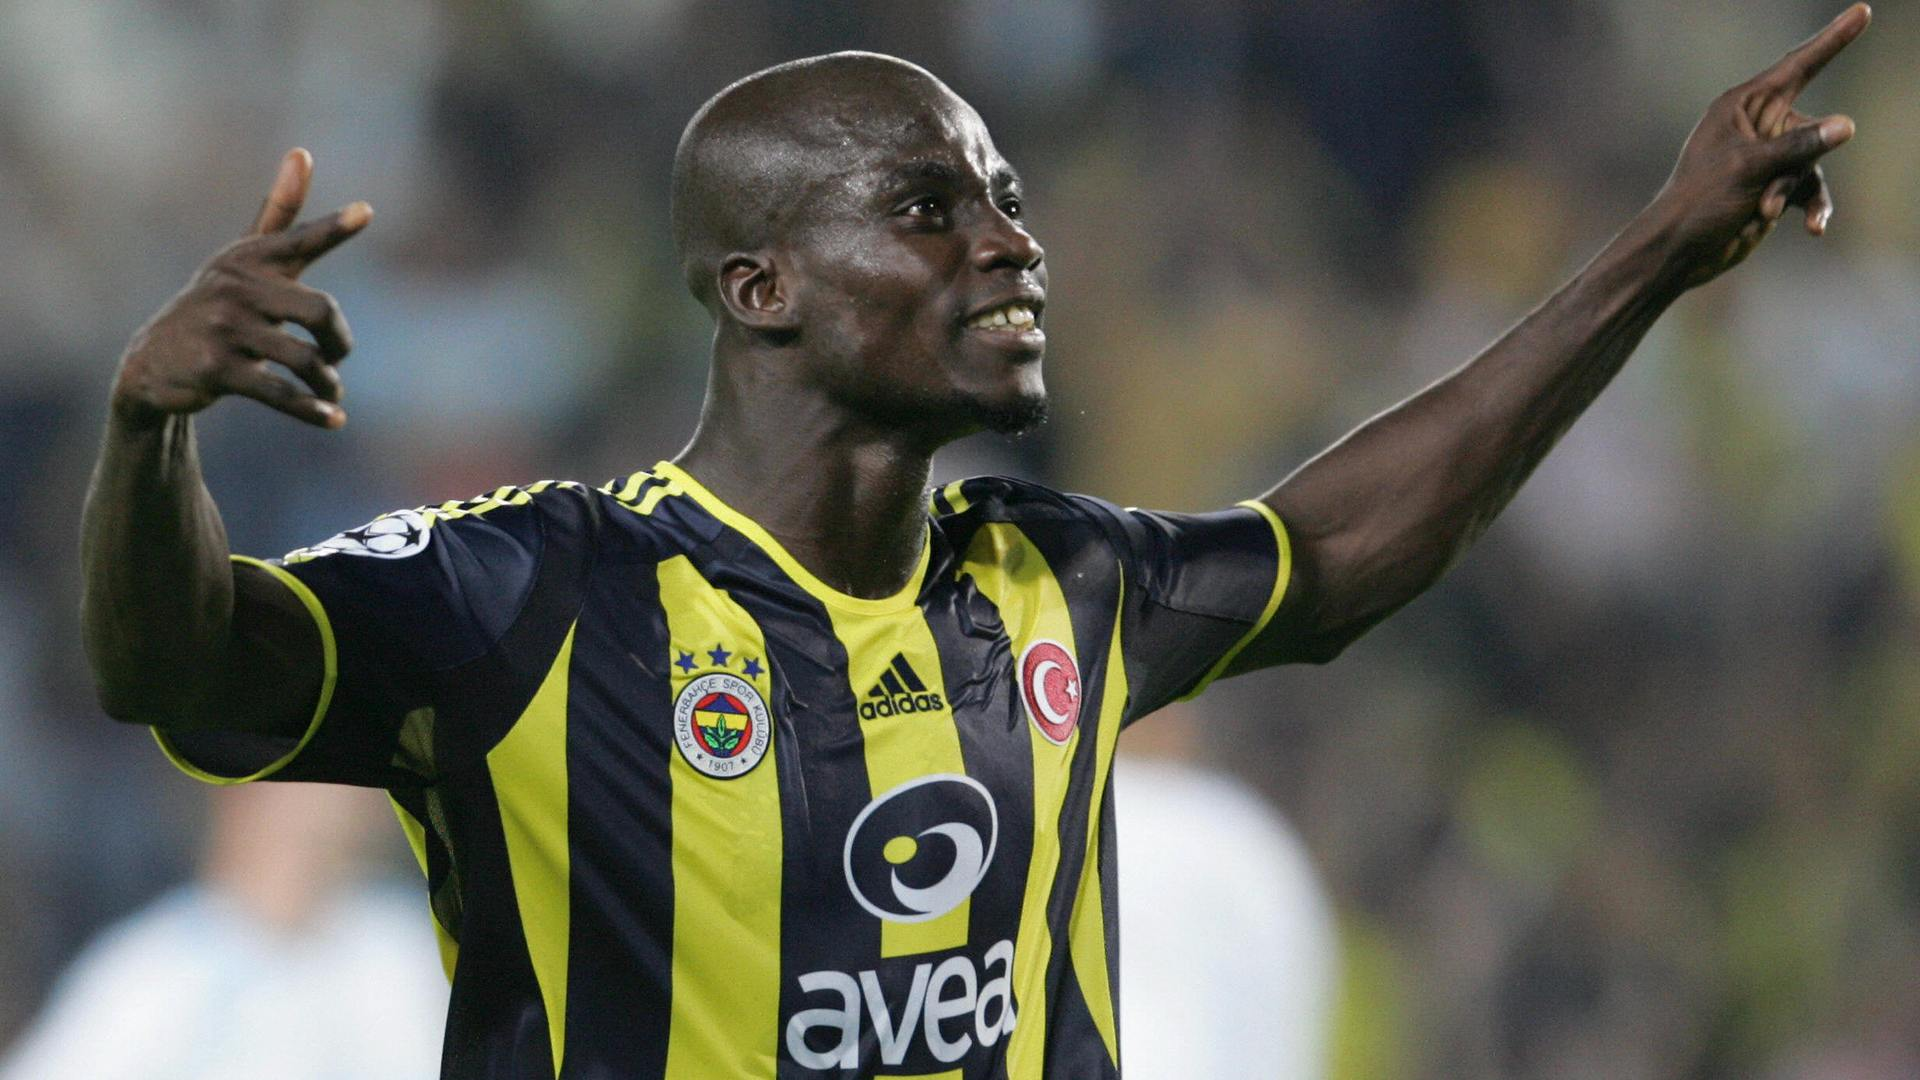 Guardiola and Baggio made things simple - Stephen Appiah on his time at Brescia